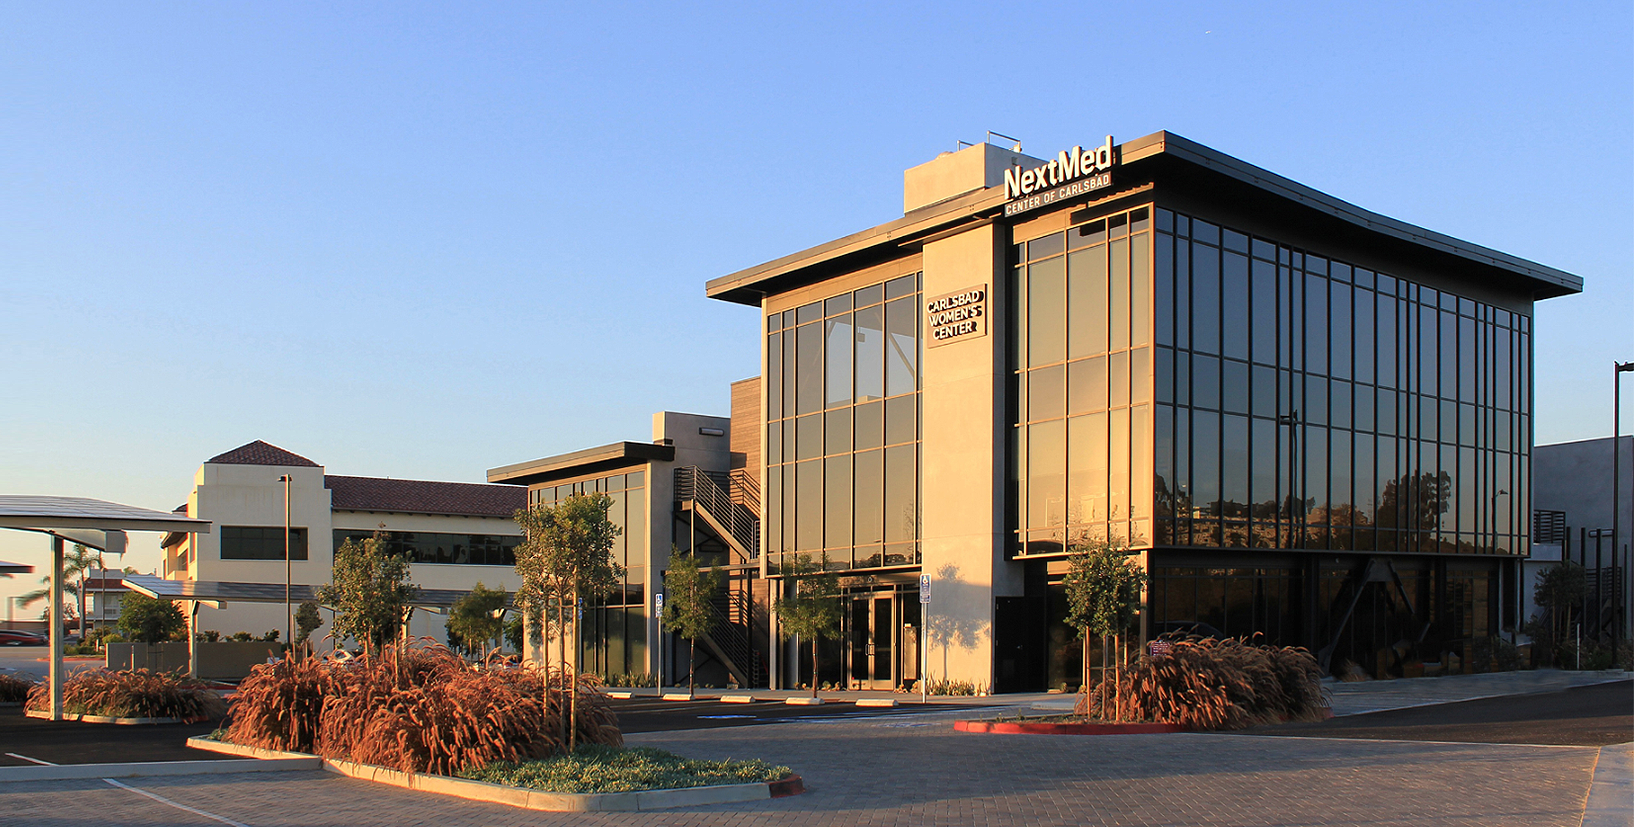 Carlsbad-nextmed-medical-doctor-clinic-med-physician-medcenter-health-center-building-panorama